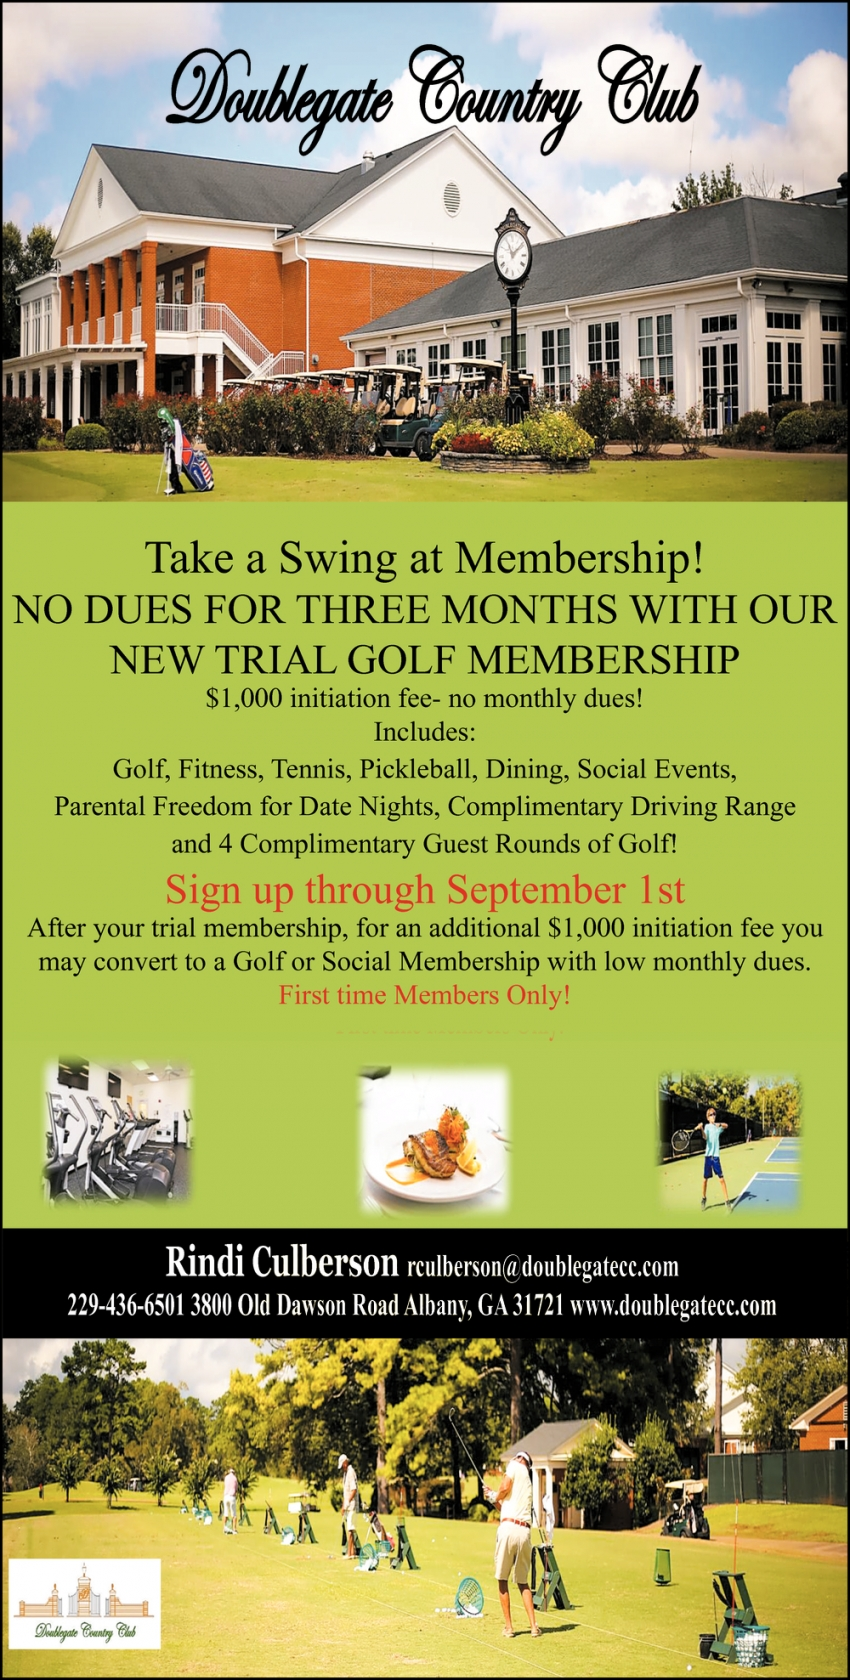 Take a Swing at Membership!